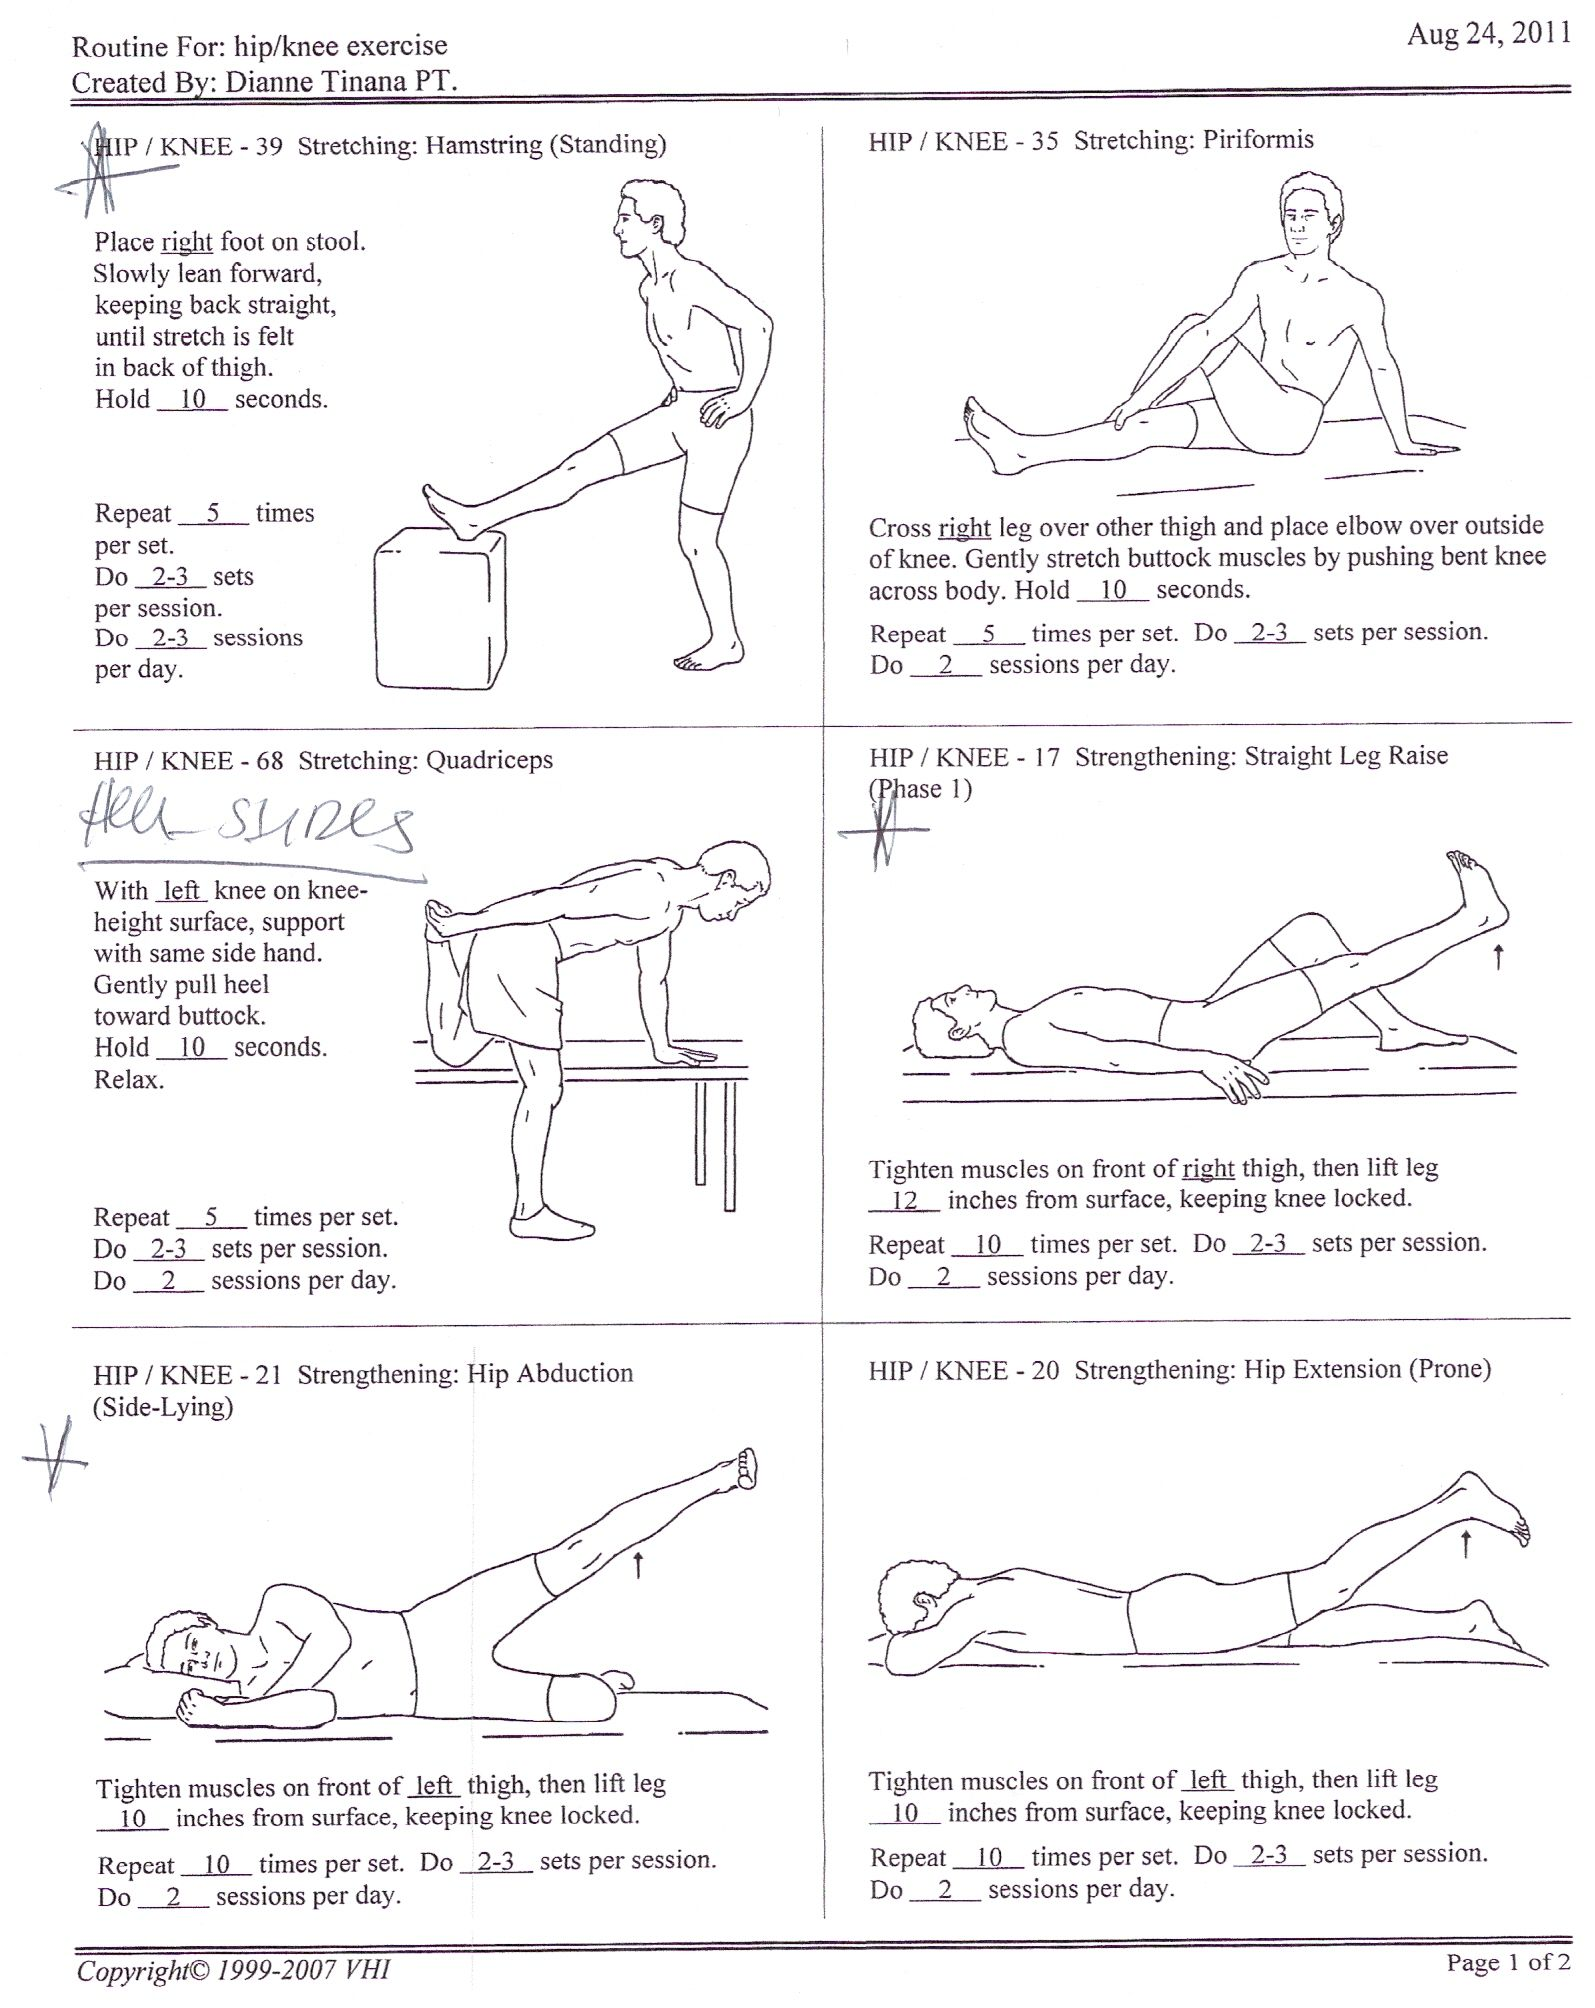 Exercise for physical therapy - Hip Knee Exercises 1 For Justin